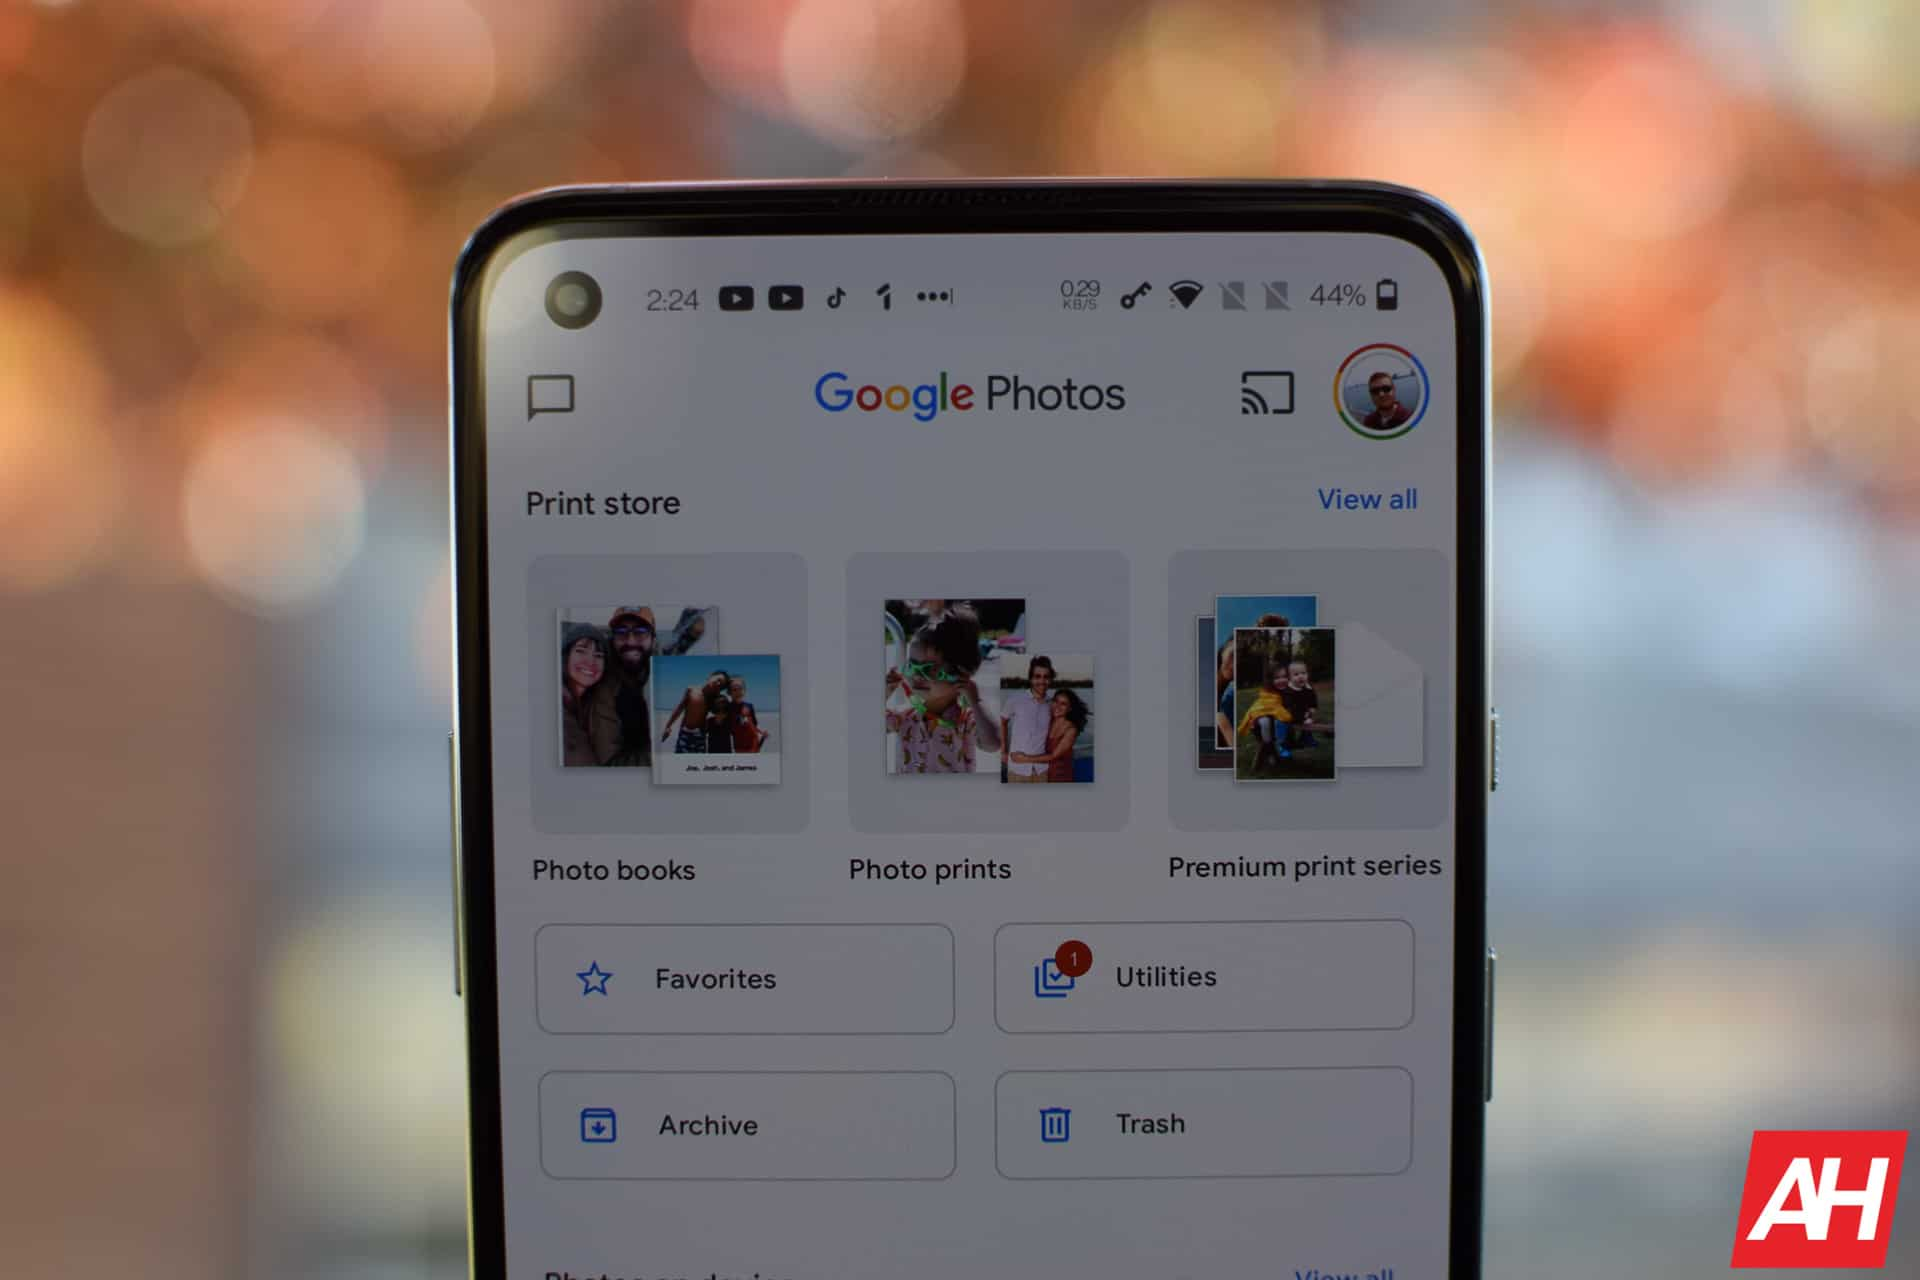 How To See When You'll Run Out Of Google Photos Storage